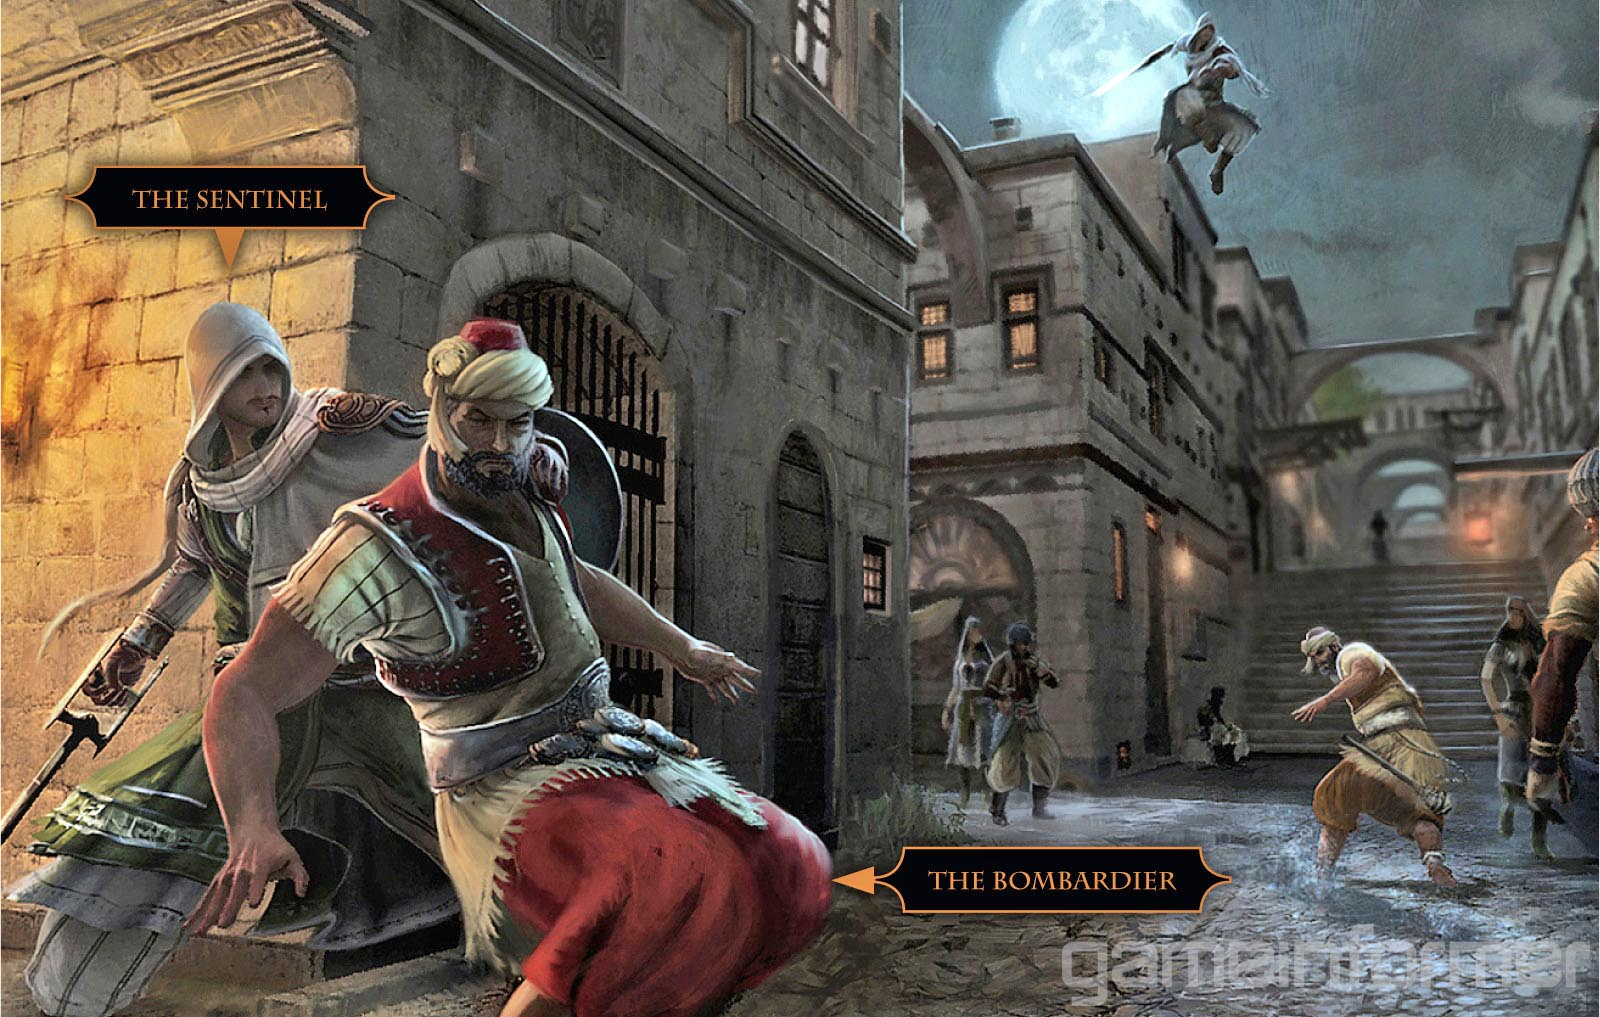 http://ilvideogioco.files.wordpress.com/2011/06/assassins-creed-revelations-sentinel_and_bombardier.jpg